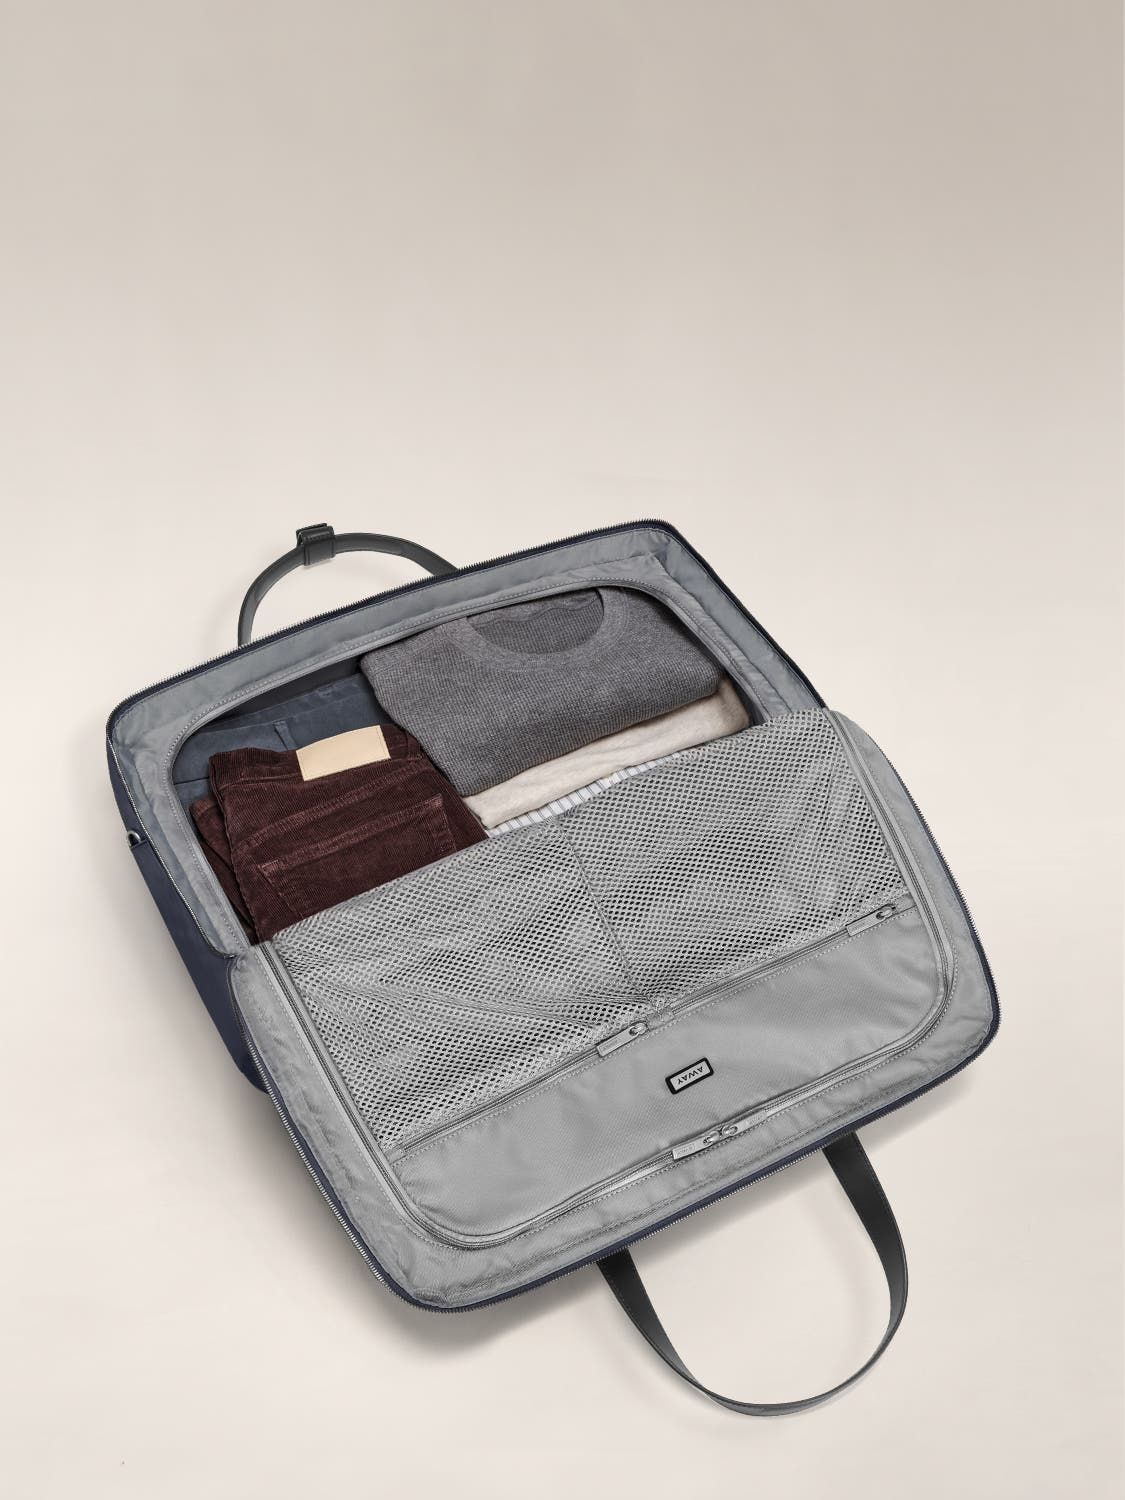 Open large shoulder bag with flap flat and gray interior packed with clothes.